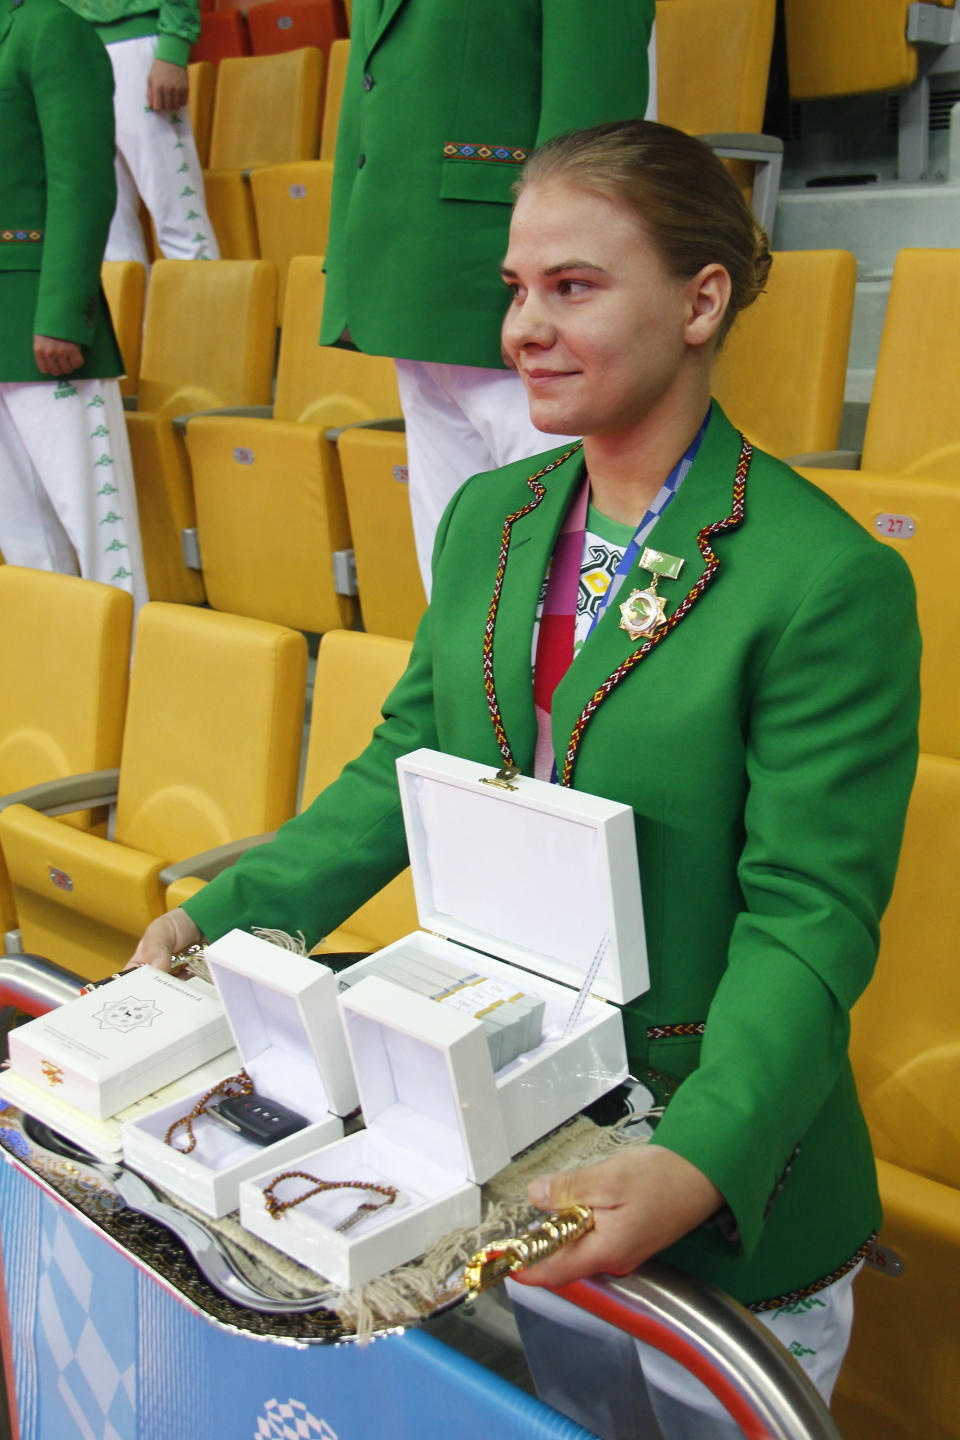 ADDS CLASS OF MEDAL Polina Guryeva, Olympic silver medalist in the women's 59kg weightlifting event, at the 2020 Summer Olympics shows her Presidential gift at a lavish ceremony in Ashgabat, Turkmenistan, Saturday, Aug. 21, 2021. Turkmenistan has lauded its first Olympic medal winner at a lavish ceremony where she was showered with gifts. Guryeva, 21, lifted a total 217 kilograms in the 59-kilogram category, edging Mikiko Andoh of Japan for second place at the Tokyo Games. (AP Photo/Alexander Vershinin)